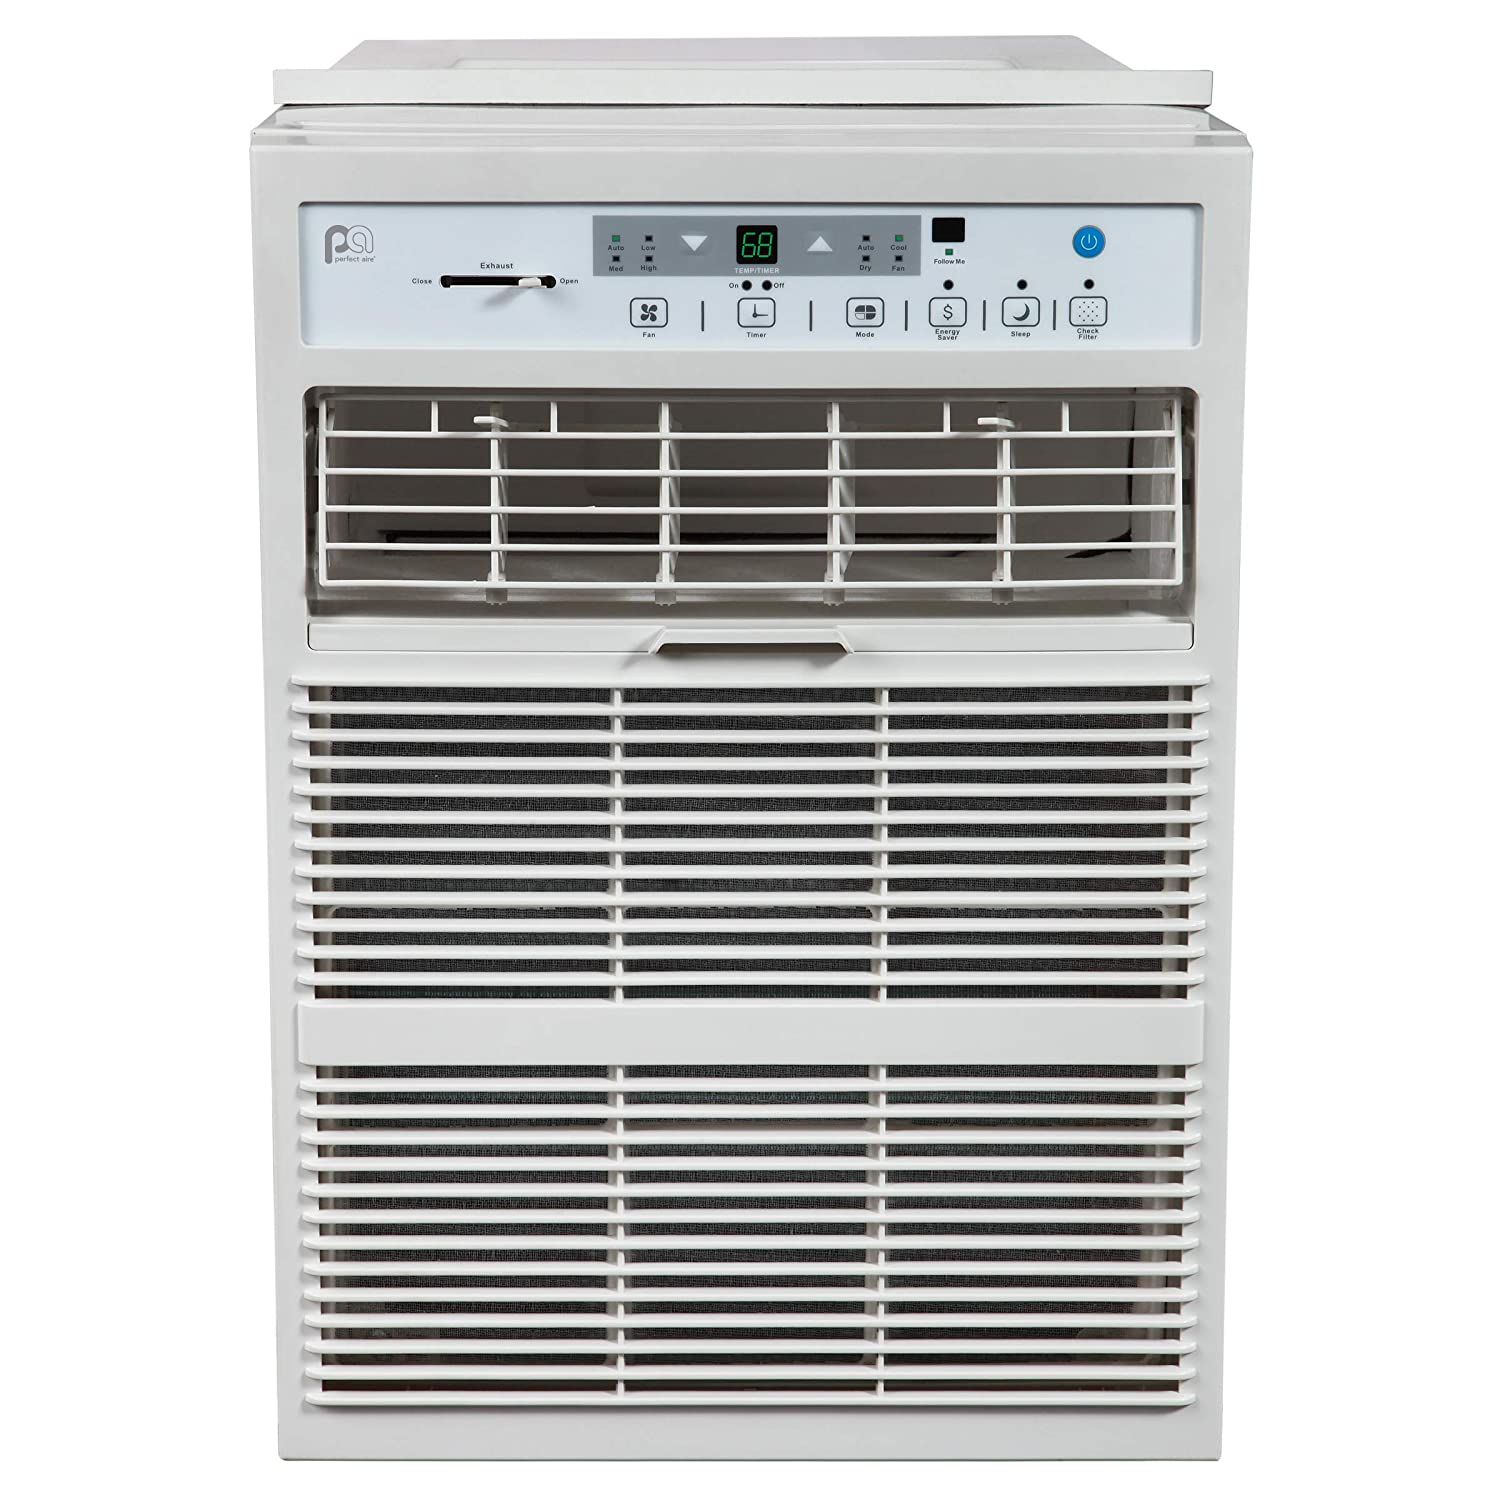 PerfectAire 3PASC10000 10,000 BTU Window Air Conditioner with Remote, EER 9.5, 400-450 Sq. Ft. Coverage Perfect Aire